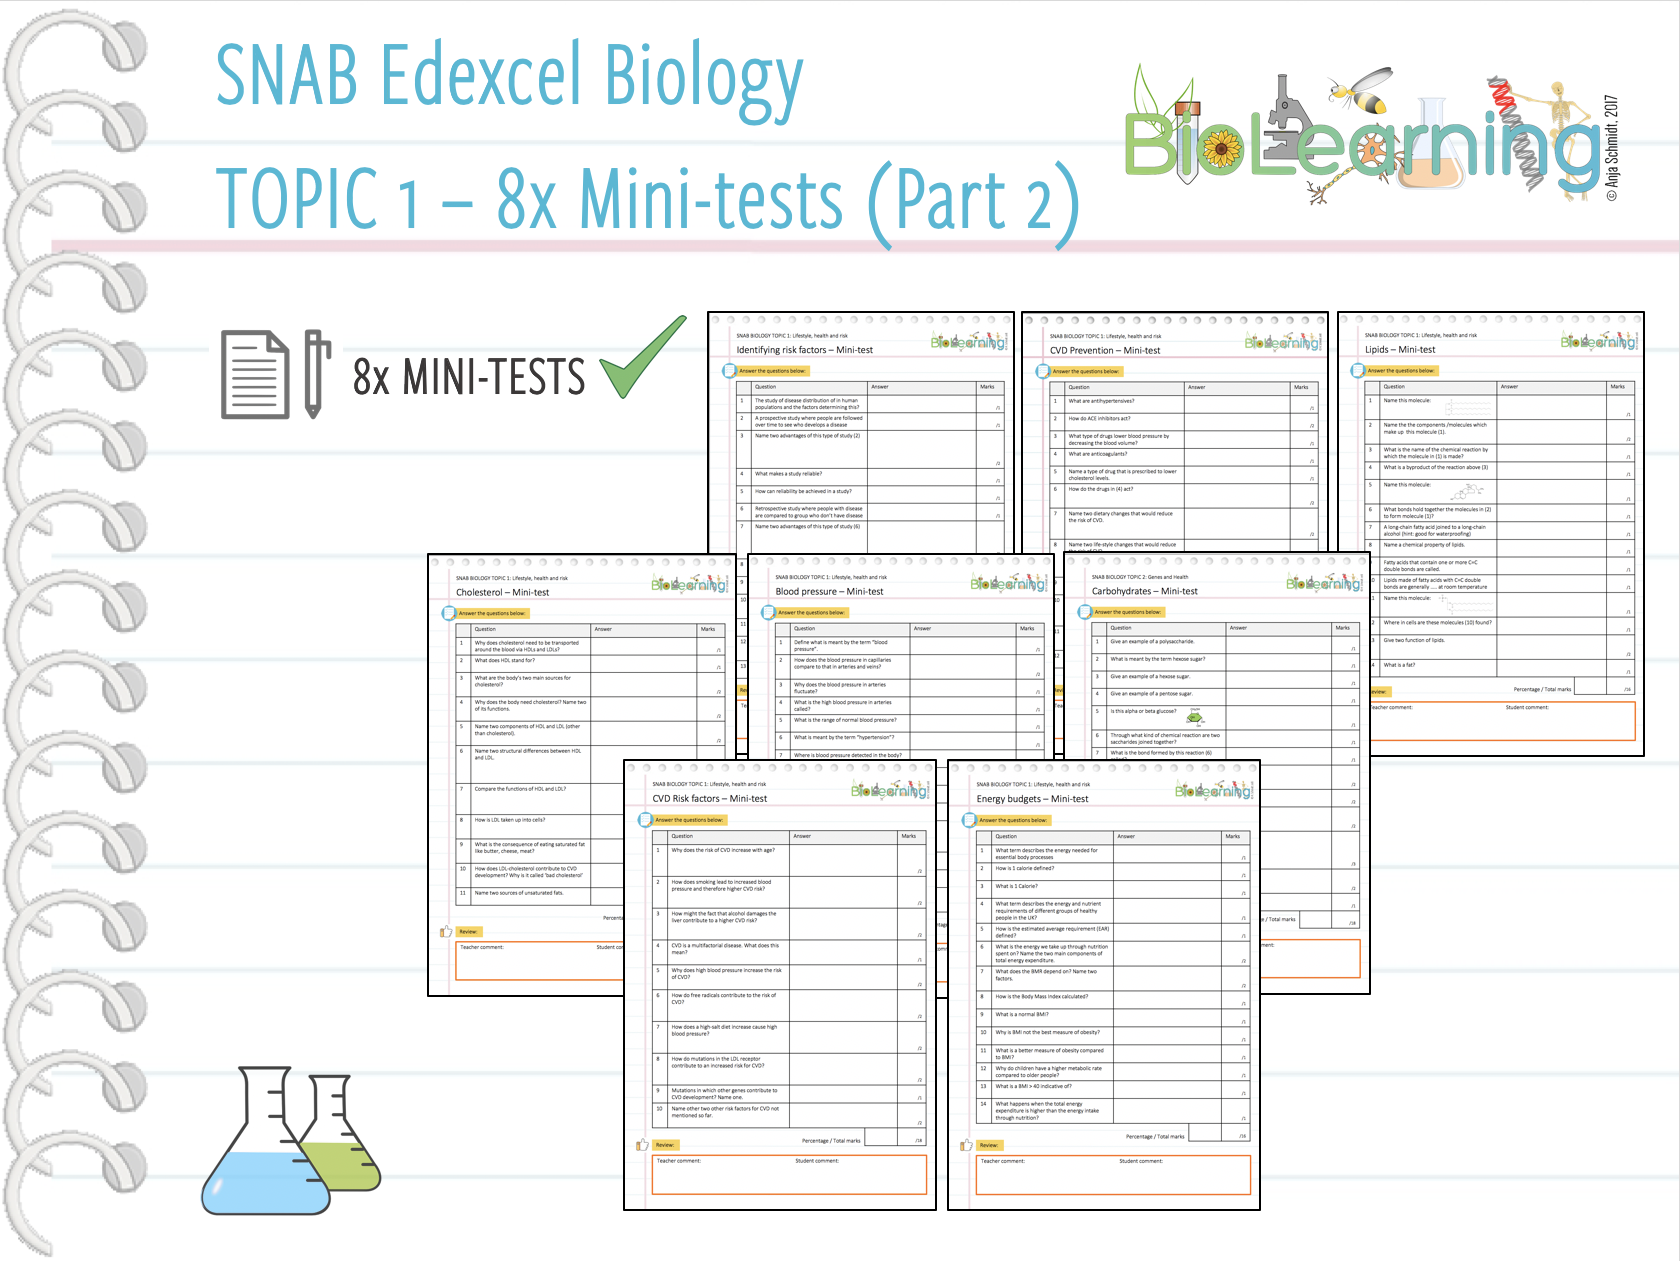 8x Mini-tests (Part 2) for SNAB Biology Topic 1: Lifestyle-Health and Risk